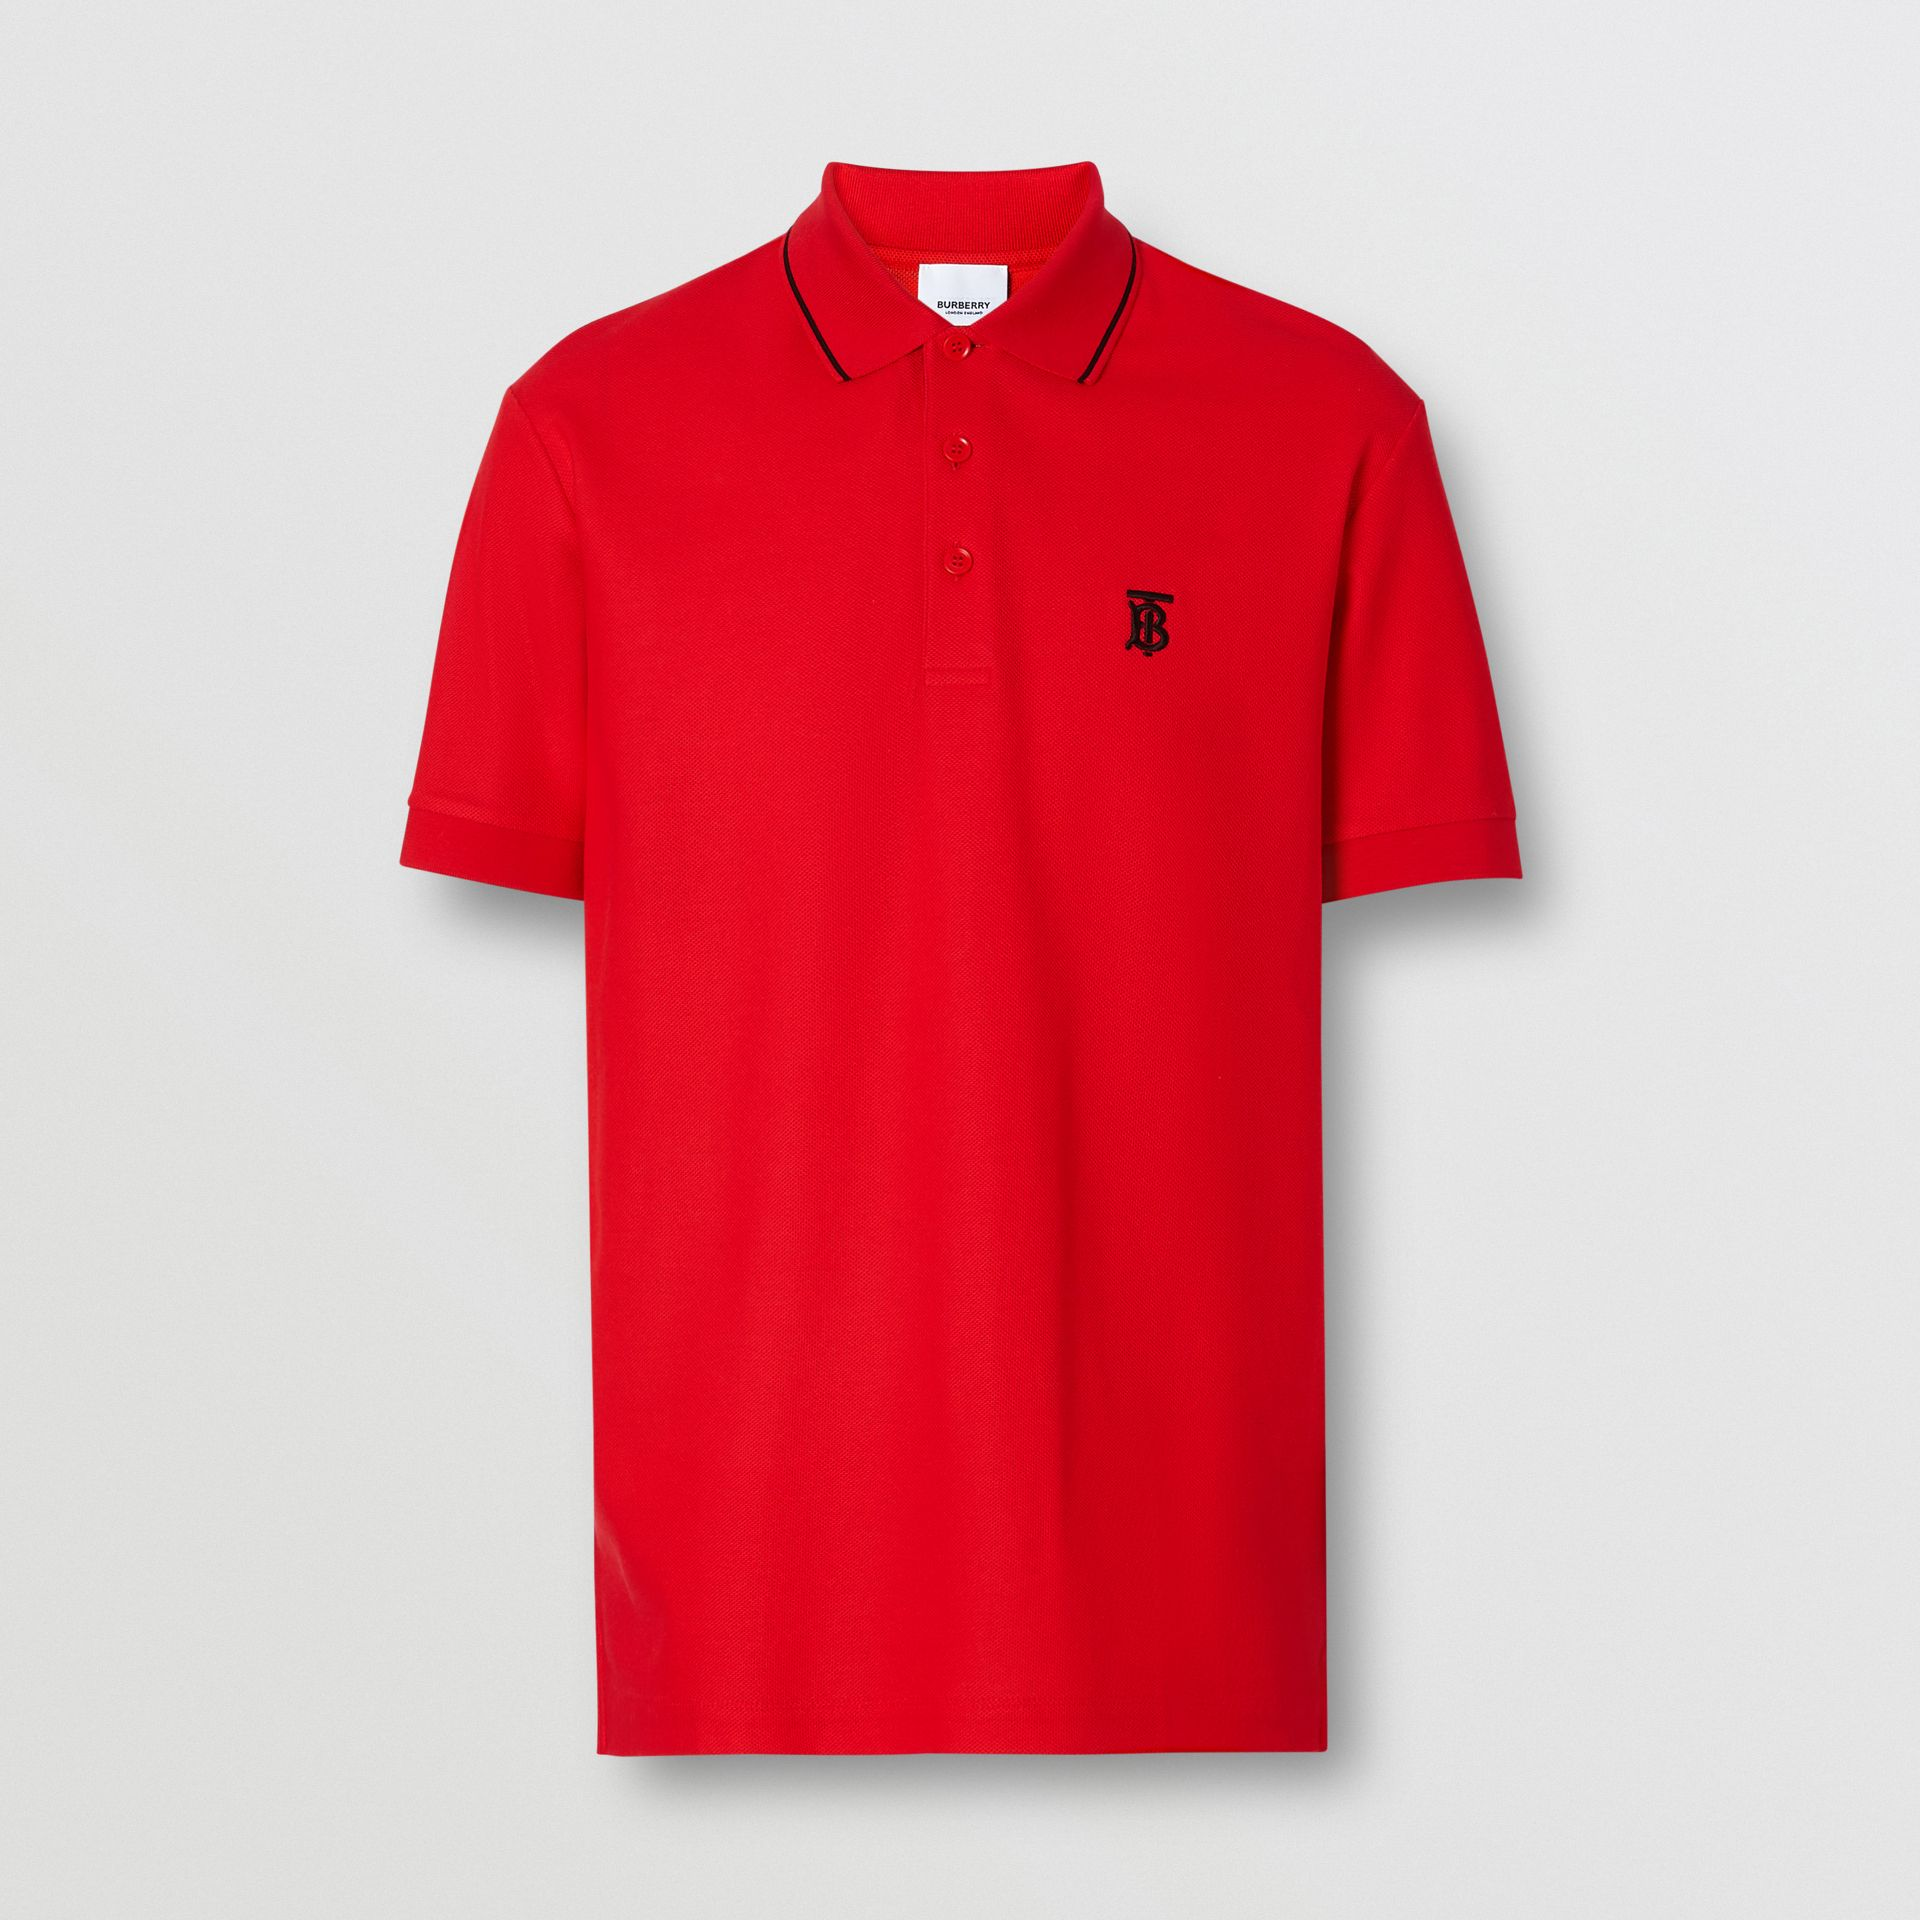 Icon Stripe Placket Cotton Piqué Polo Shirt in Bright Red - Men | Burberry United Kingdom - gallery image 3